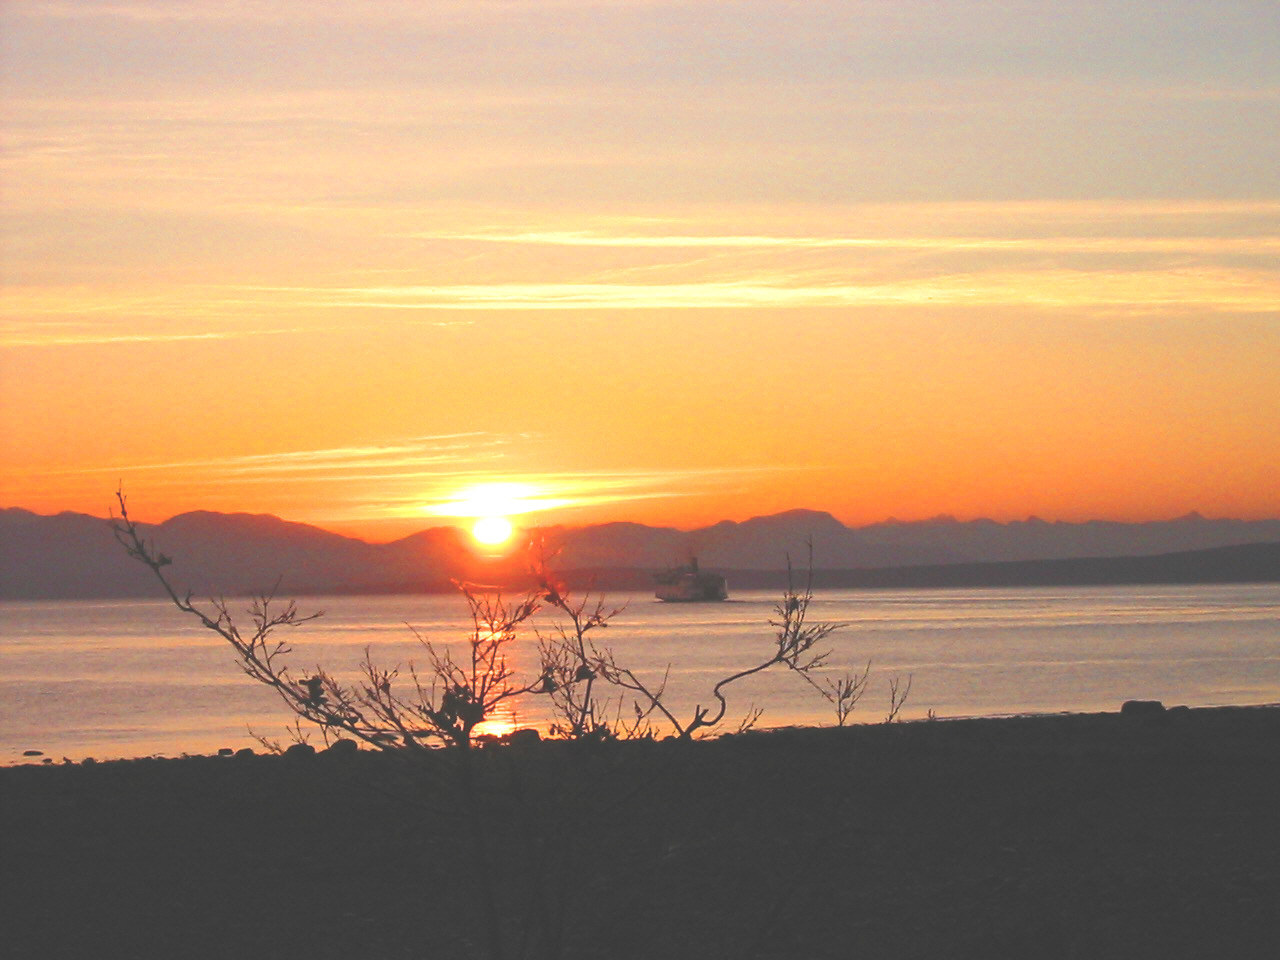 sunrise view of BC Mainland